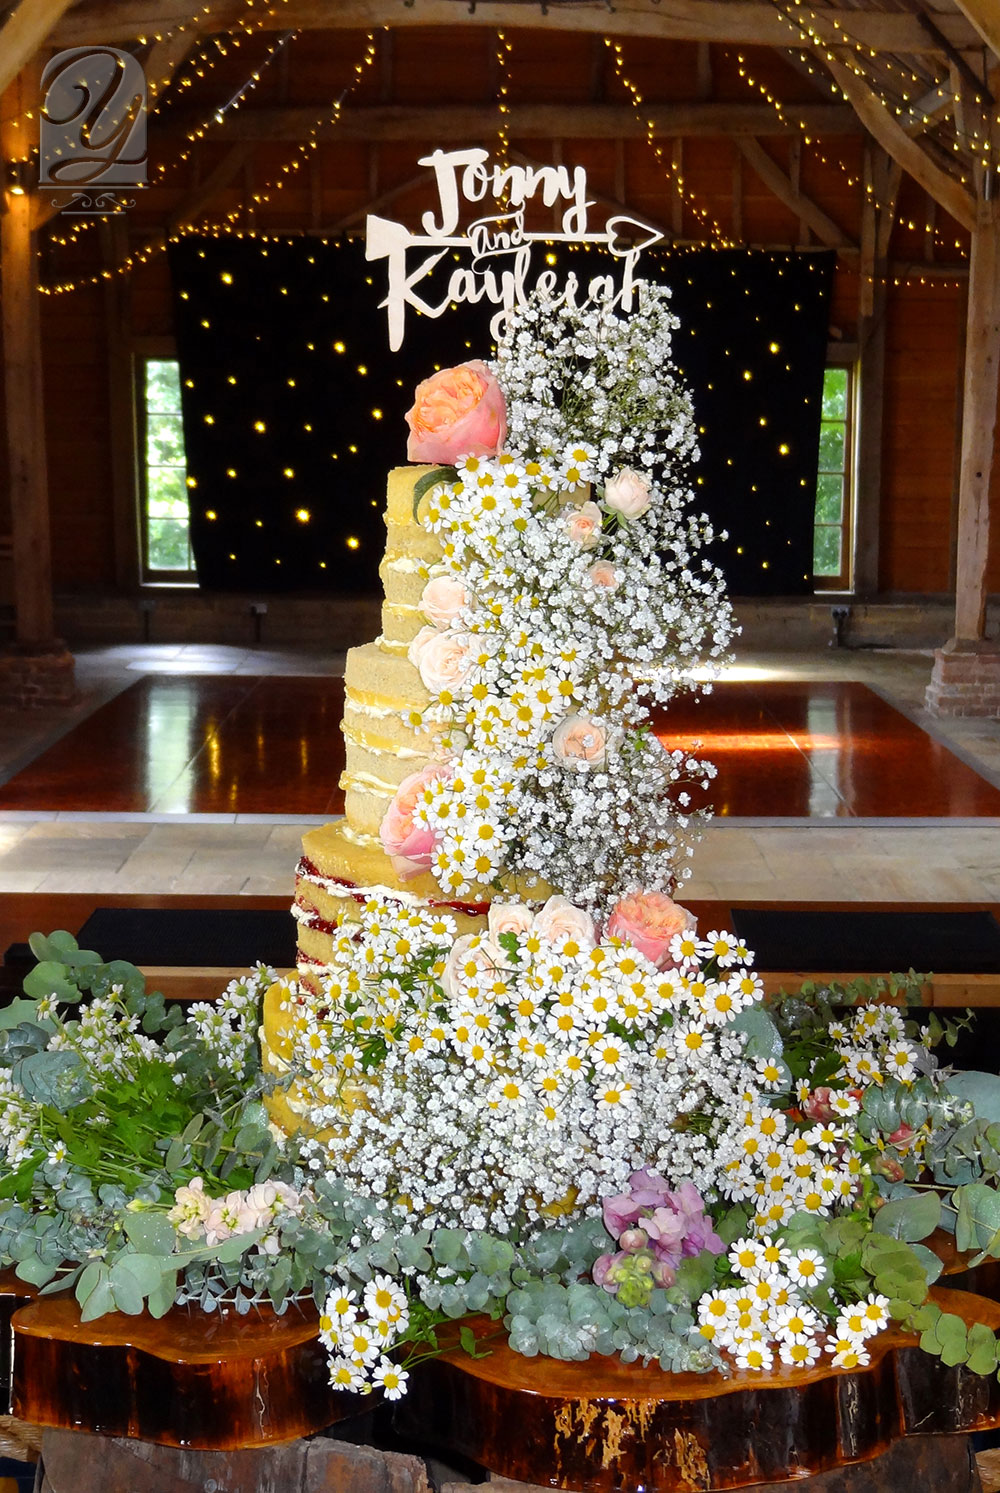 The Boho Naked Cake with Summer Flowers from Unique Cakes by Yevnig is a moreish selection of premium naked sponge cakes adorned with beautiful summertime flowers